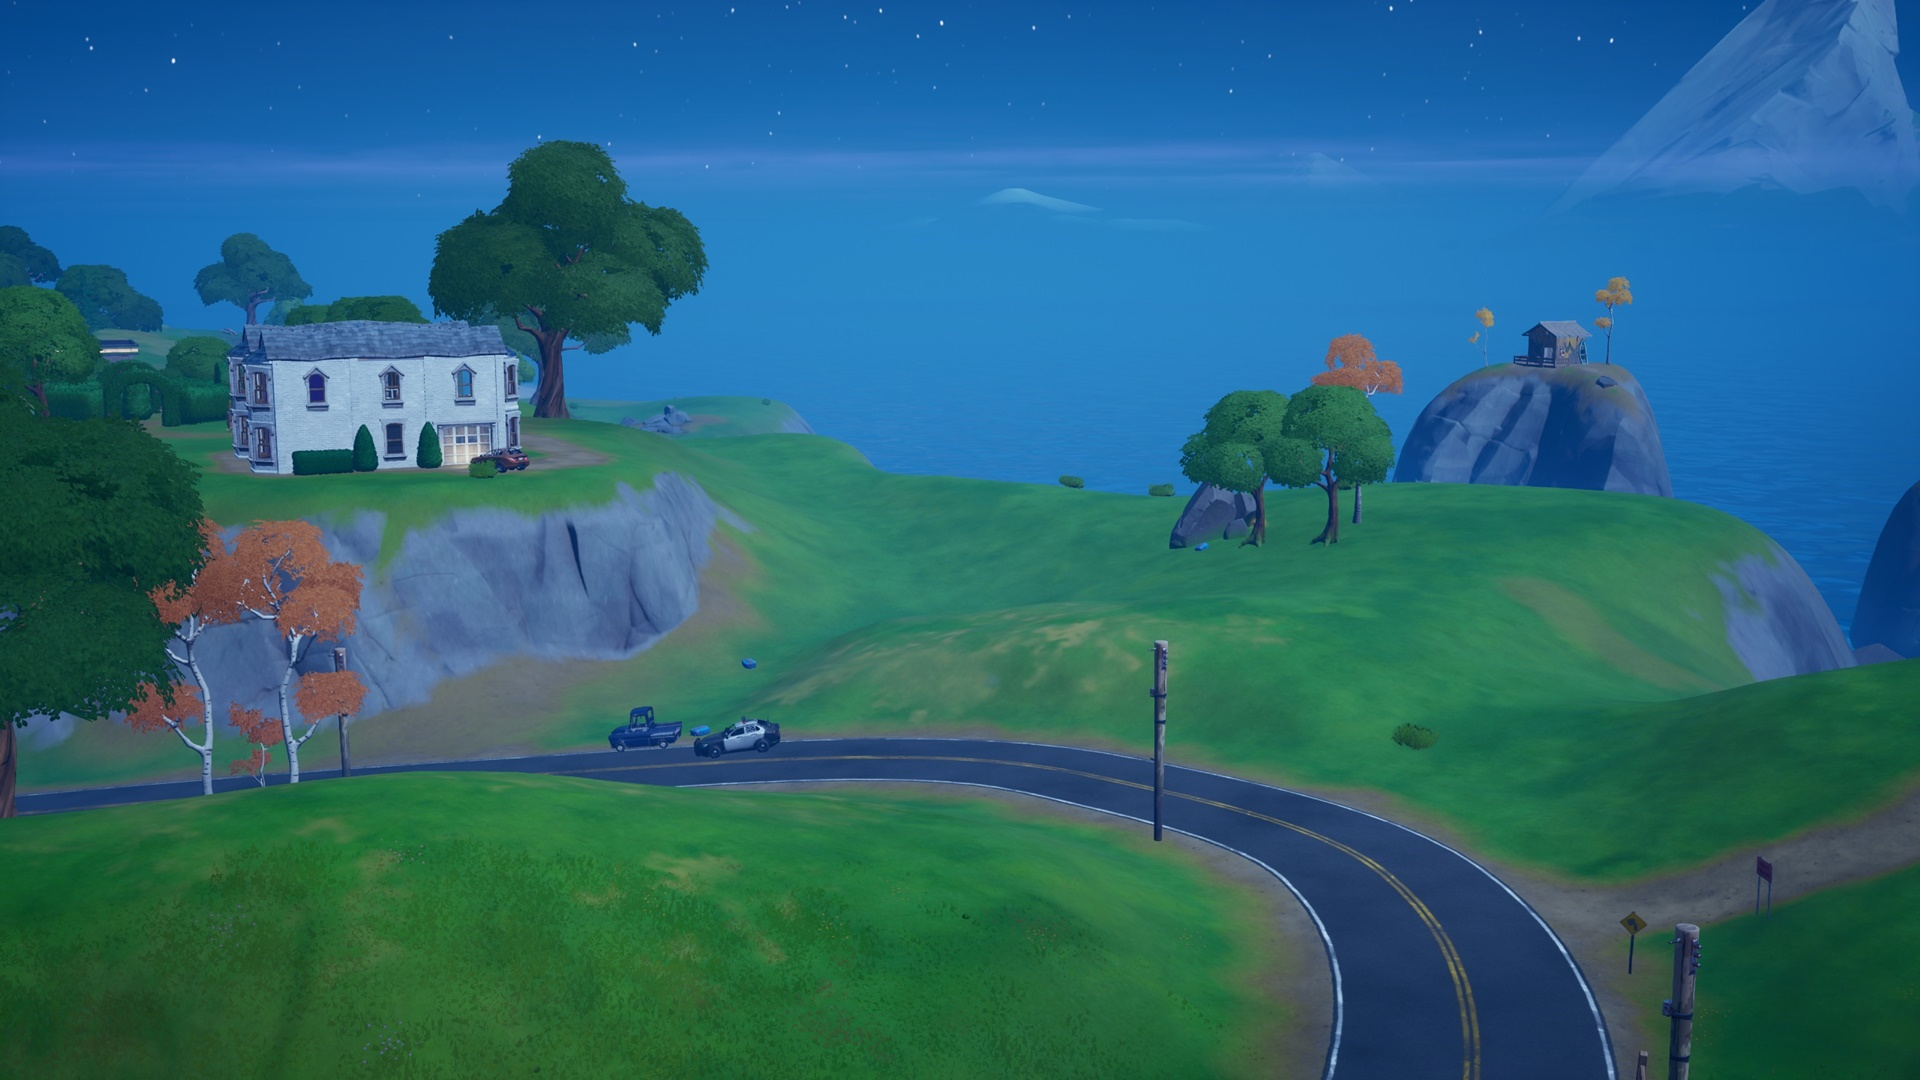 Fortnite hidden gnome: where to search between Fancy View, a wooden shack, and a big house